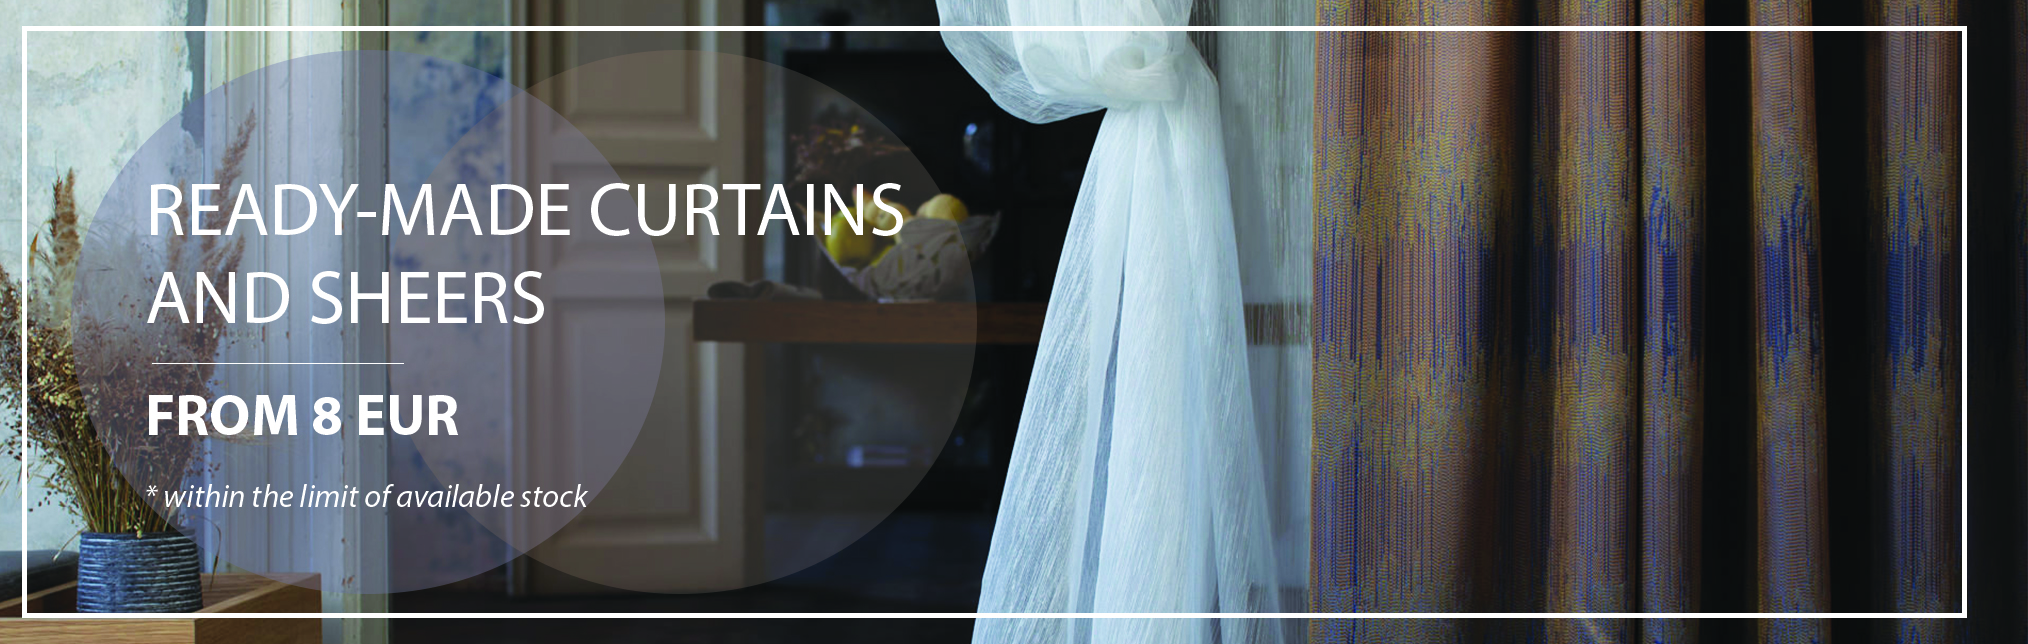 August Promotion - Ready Made Curtains